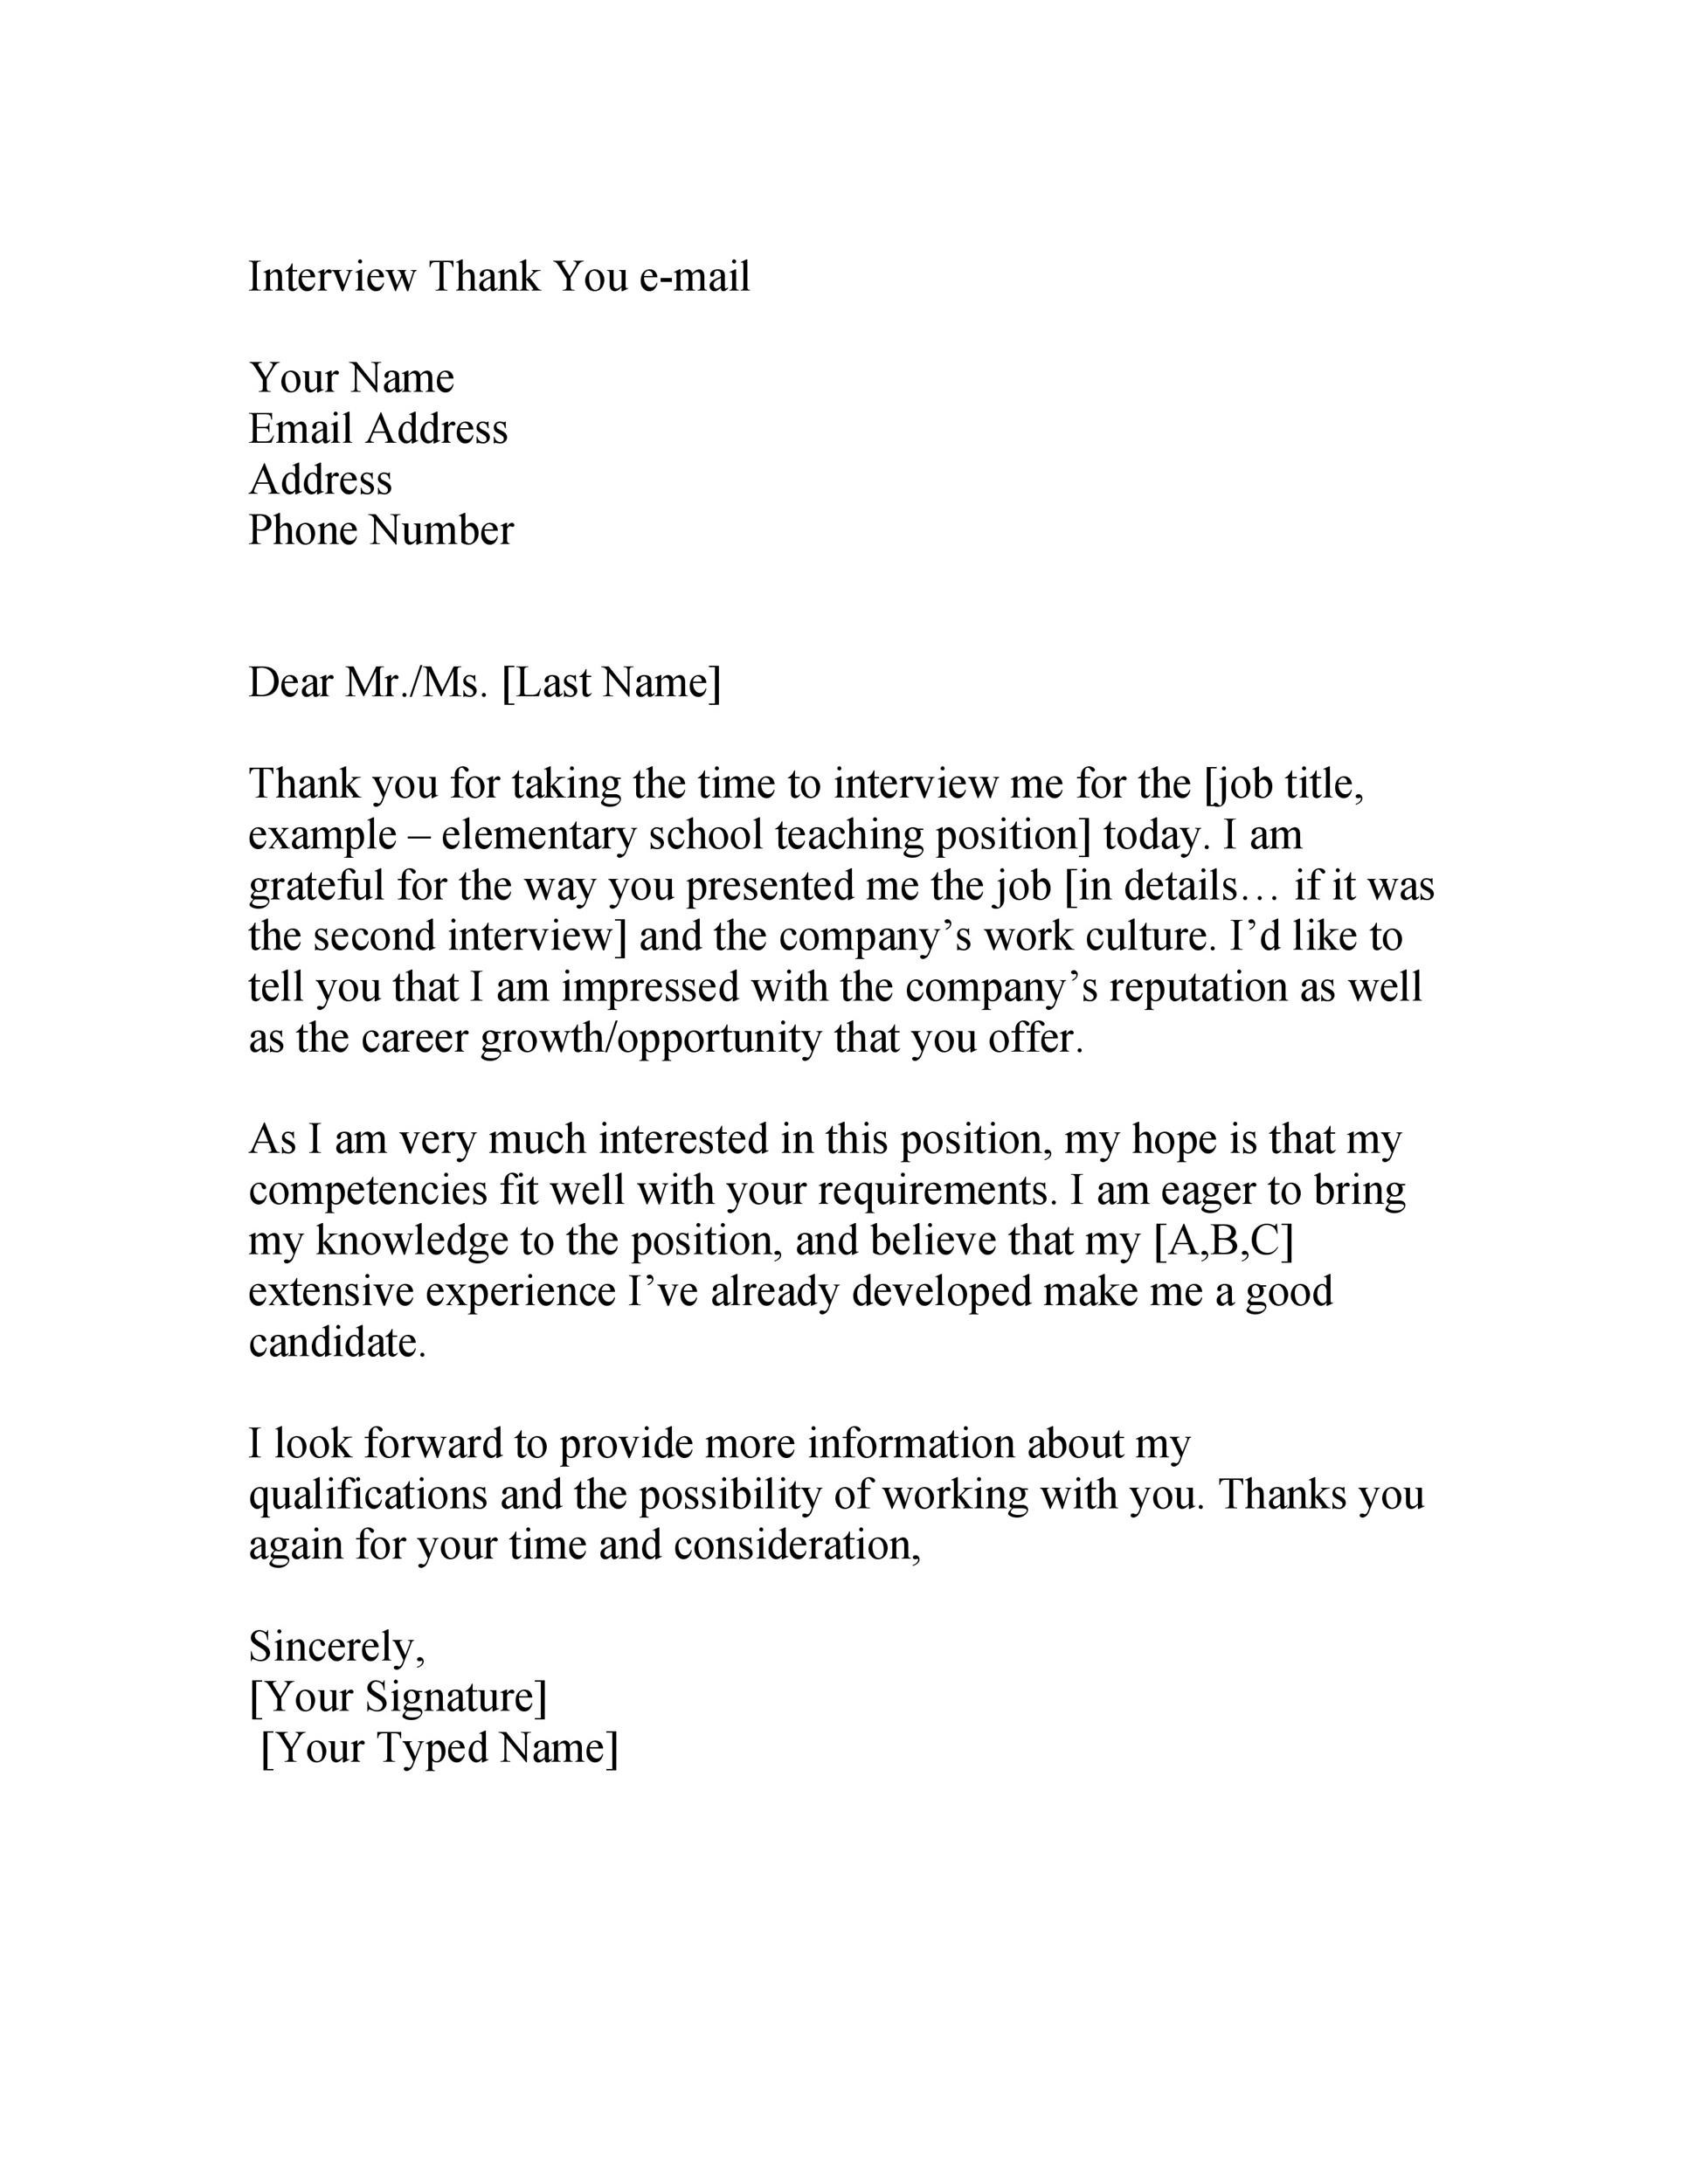 Free Thank you e-mail after Interview Template 20